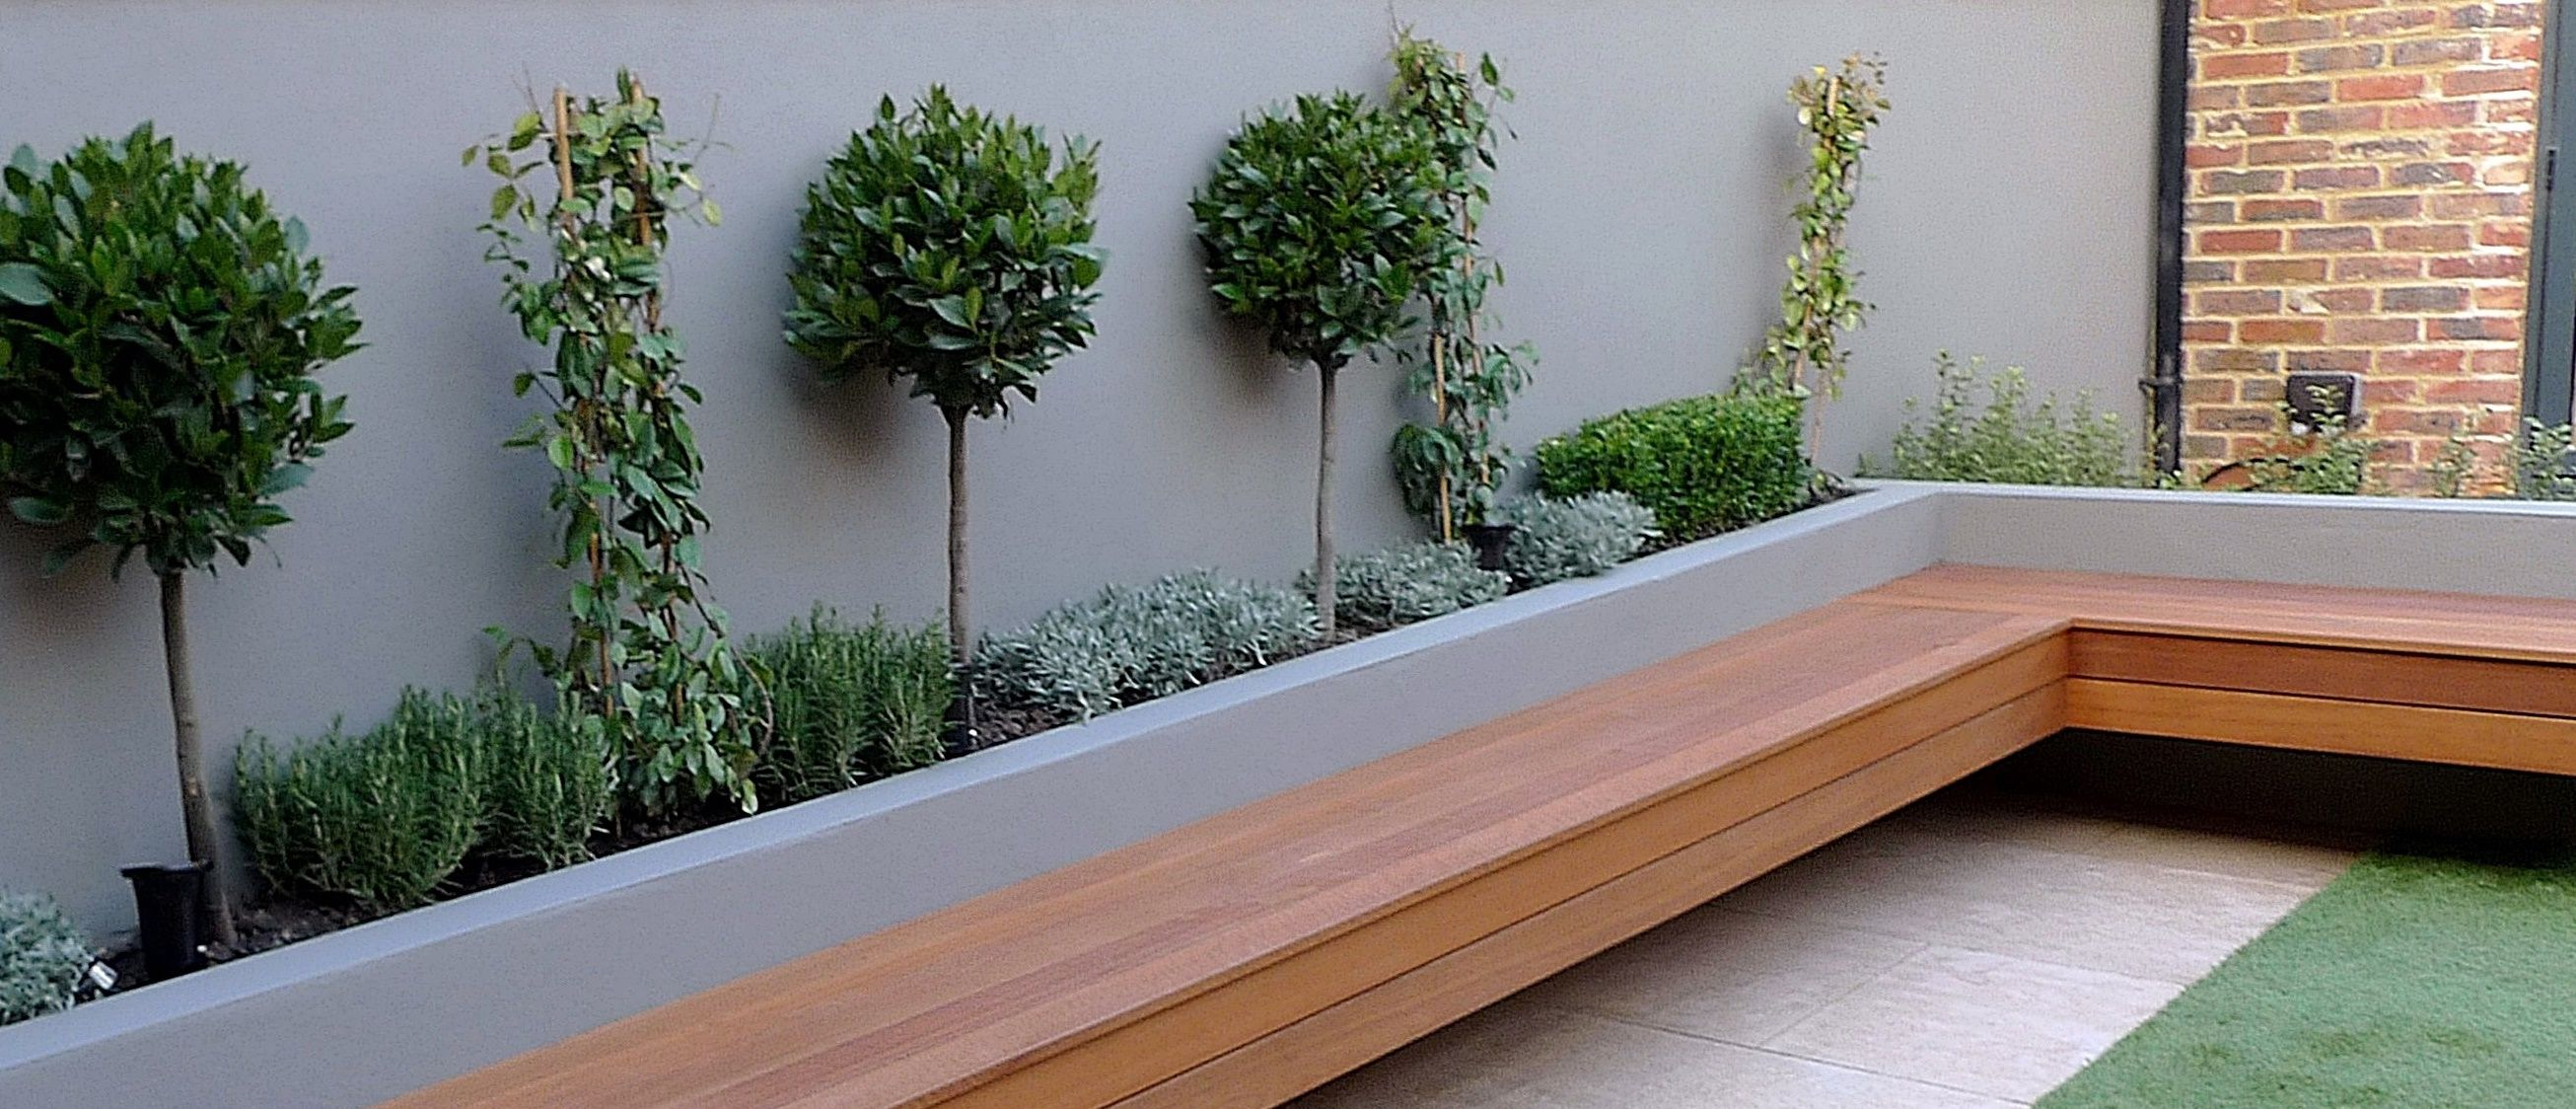 raised beds artificial grass hardwood strip travertine paving